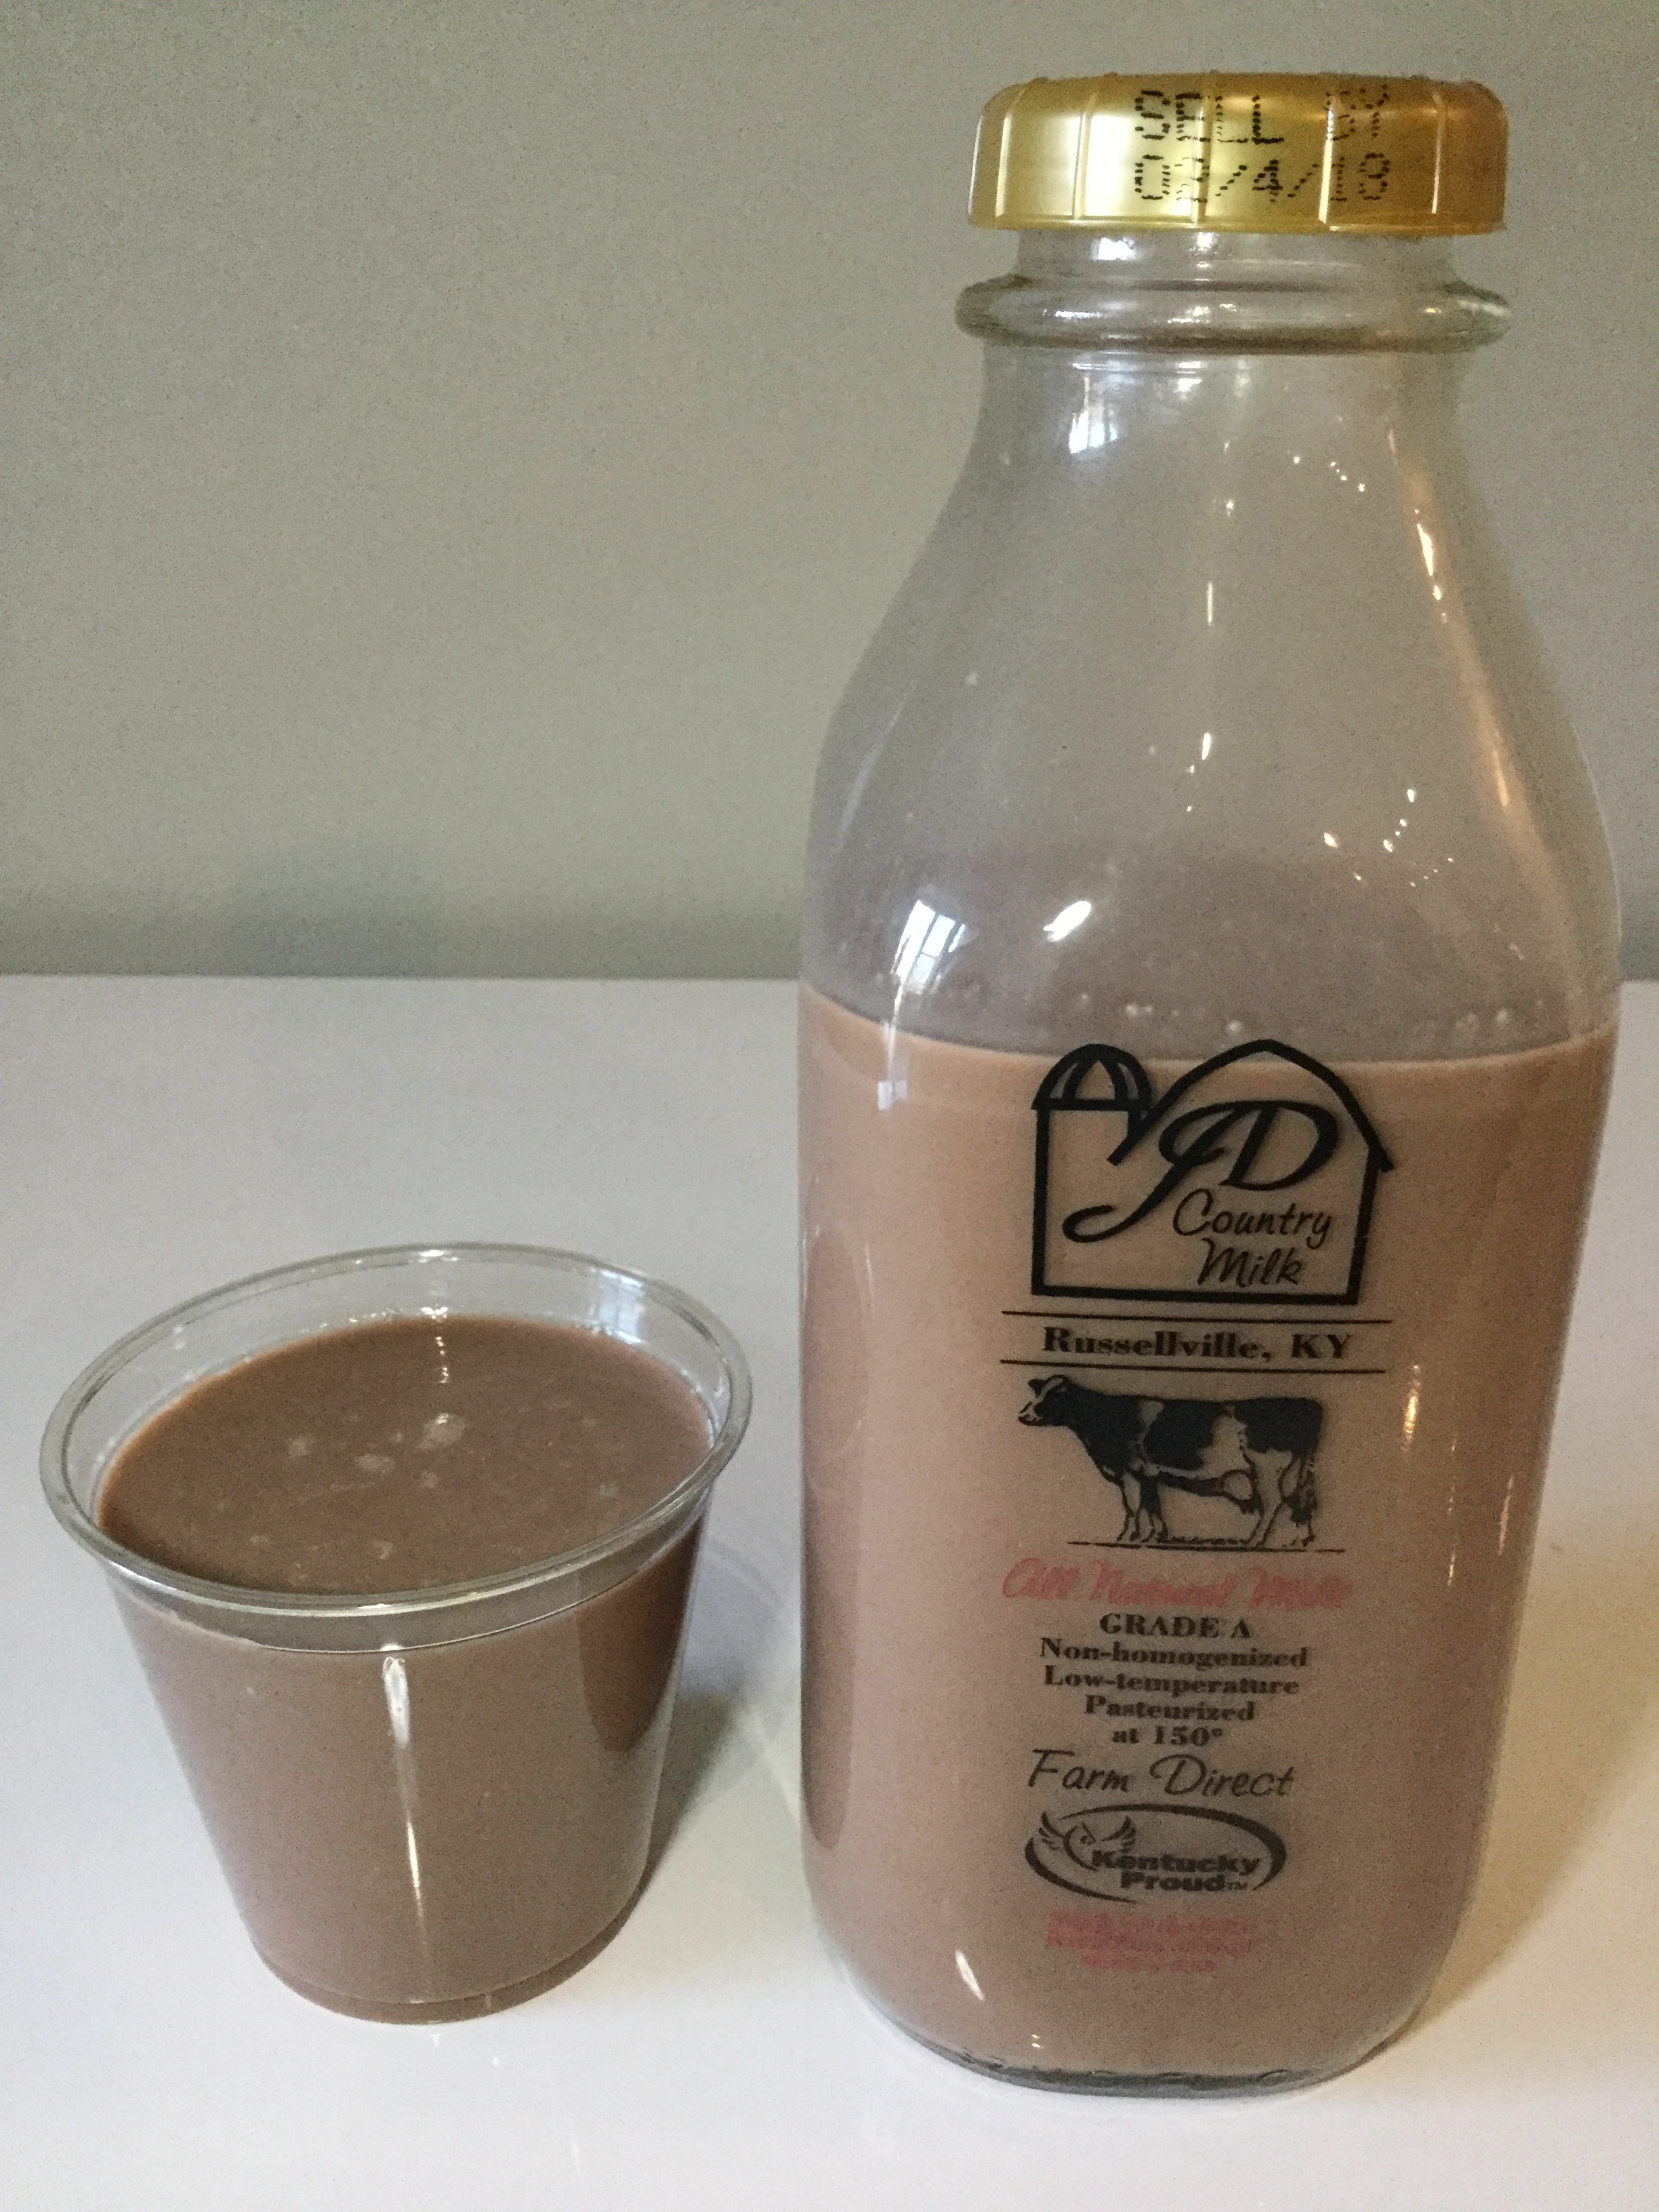 JD Country Chocolate Milk Cup